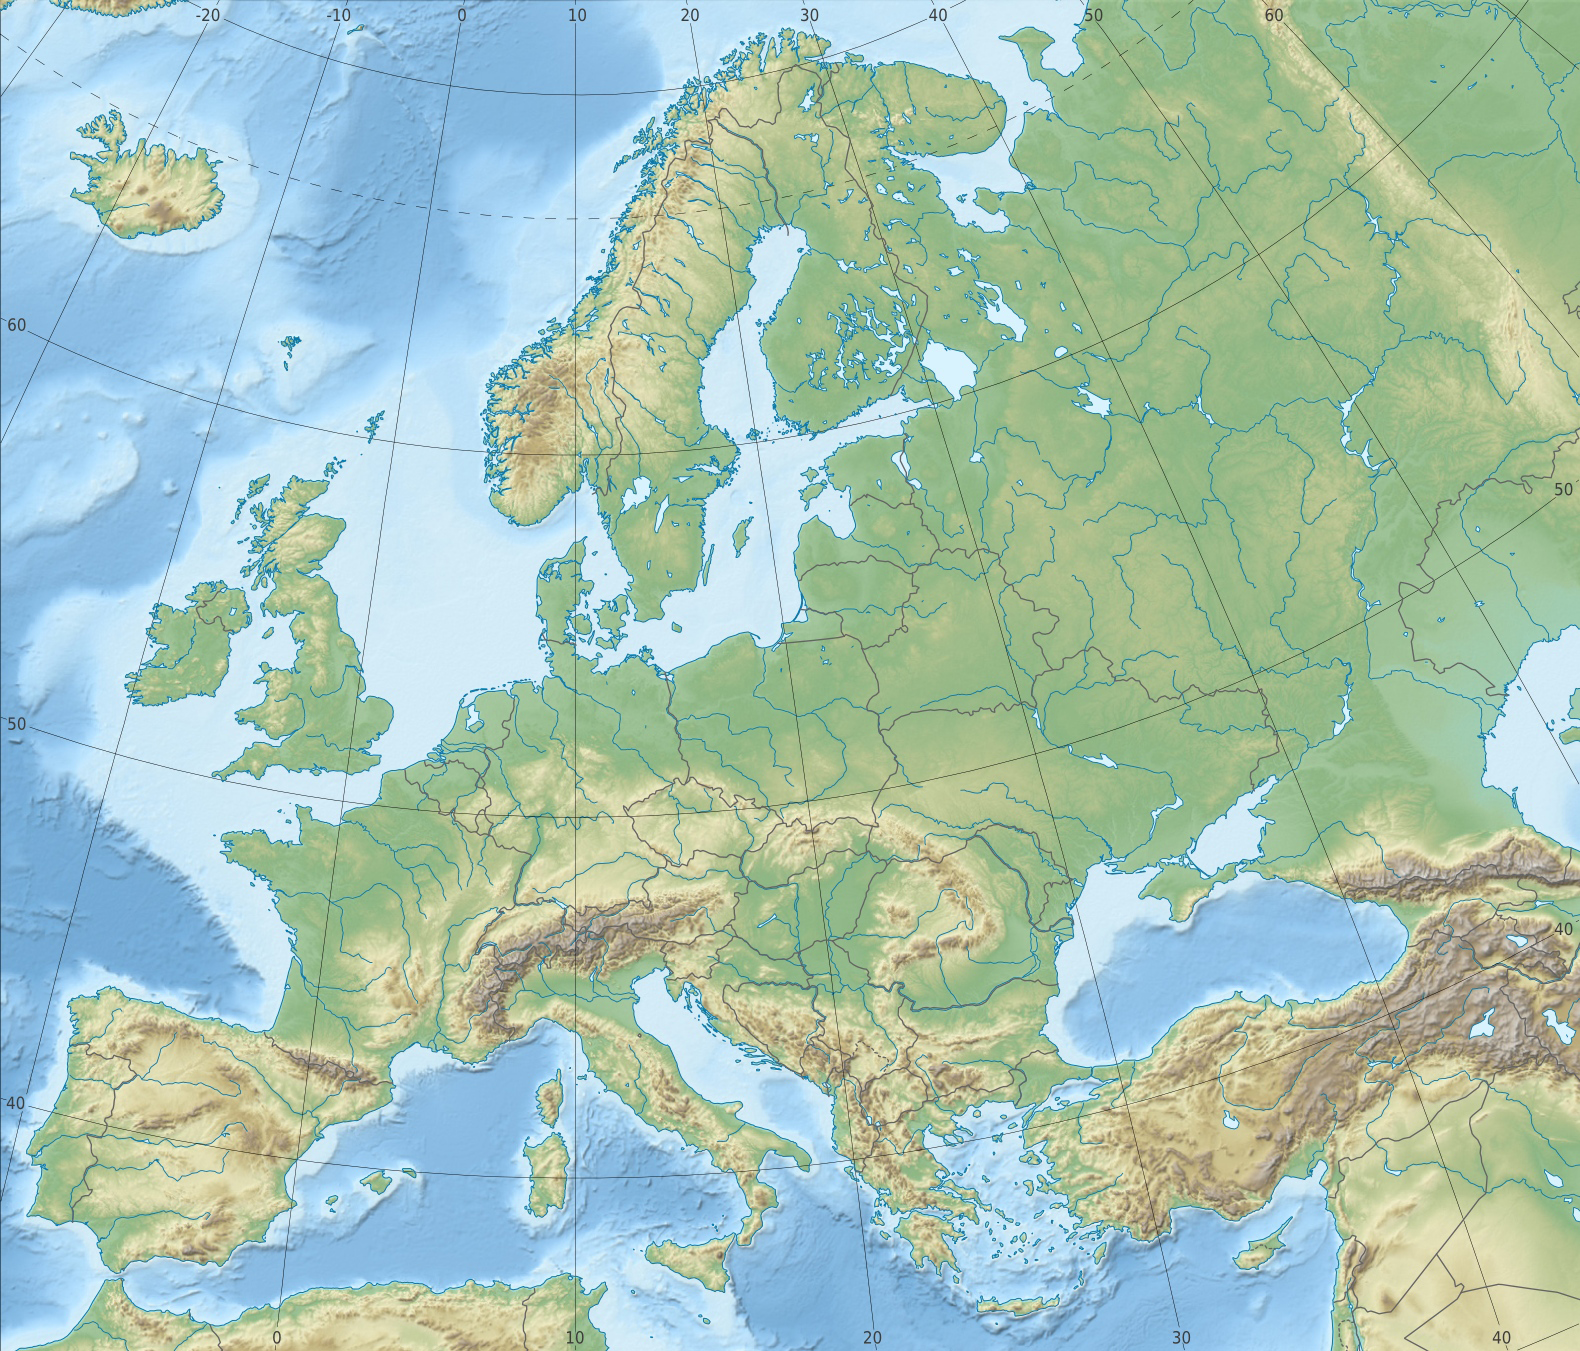 Detailed physical and relief map of Europe Europe detailed physical and reli